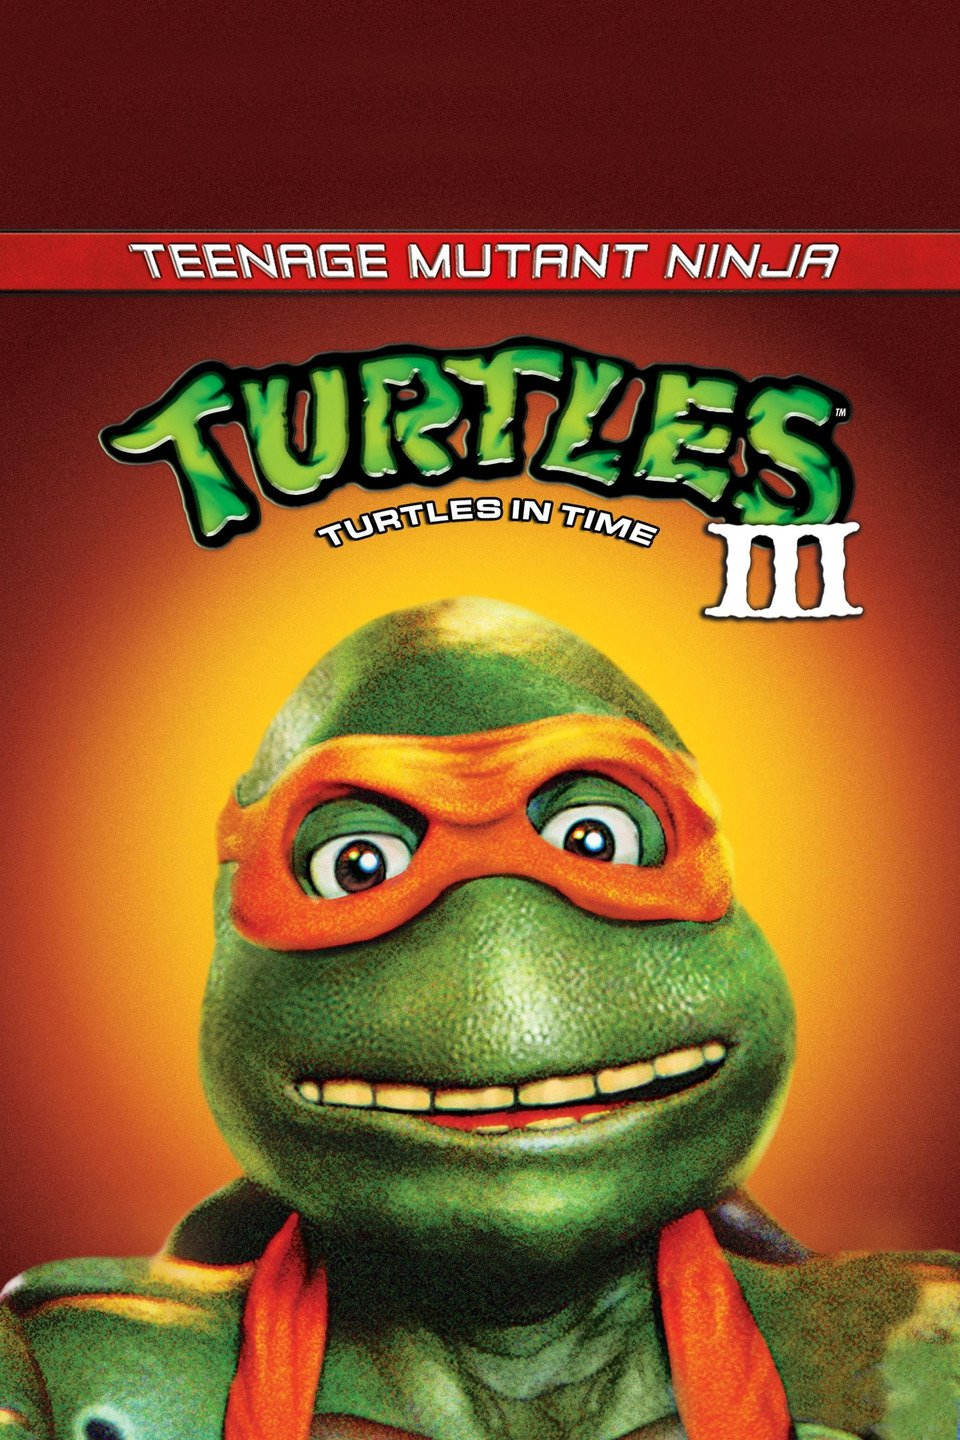 Teenage Mutant Ninja Turtles III-Teenage Mutant Ninja Turtles III